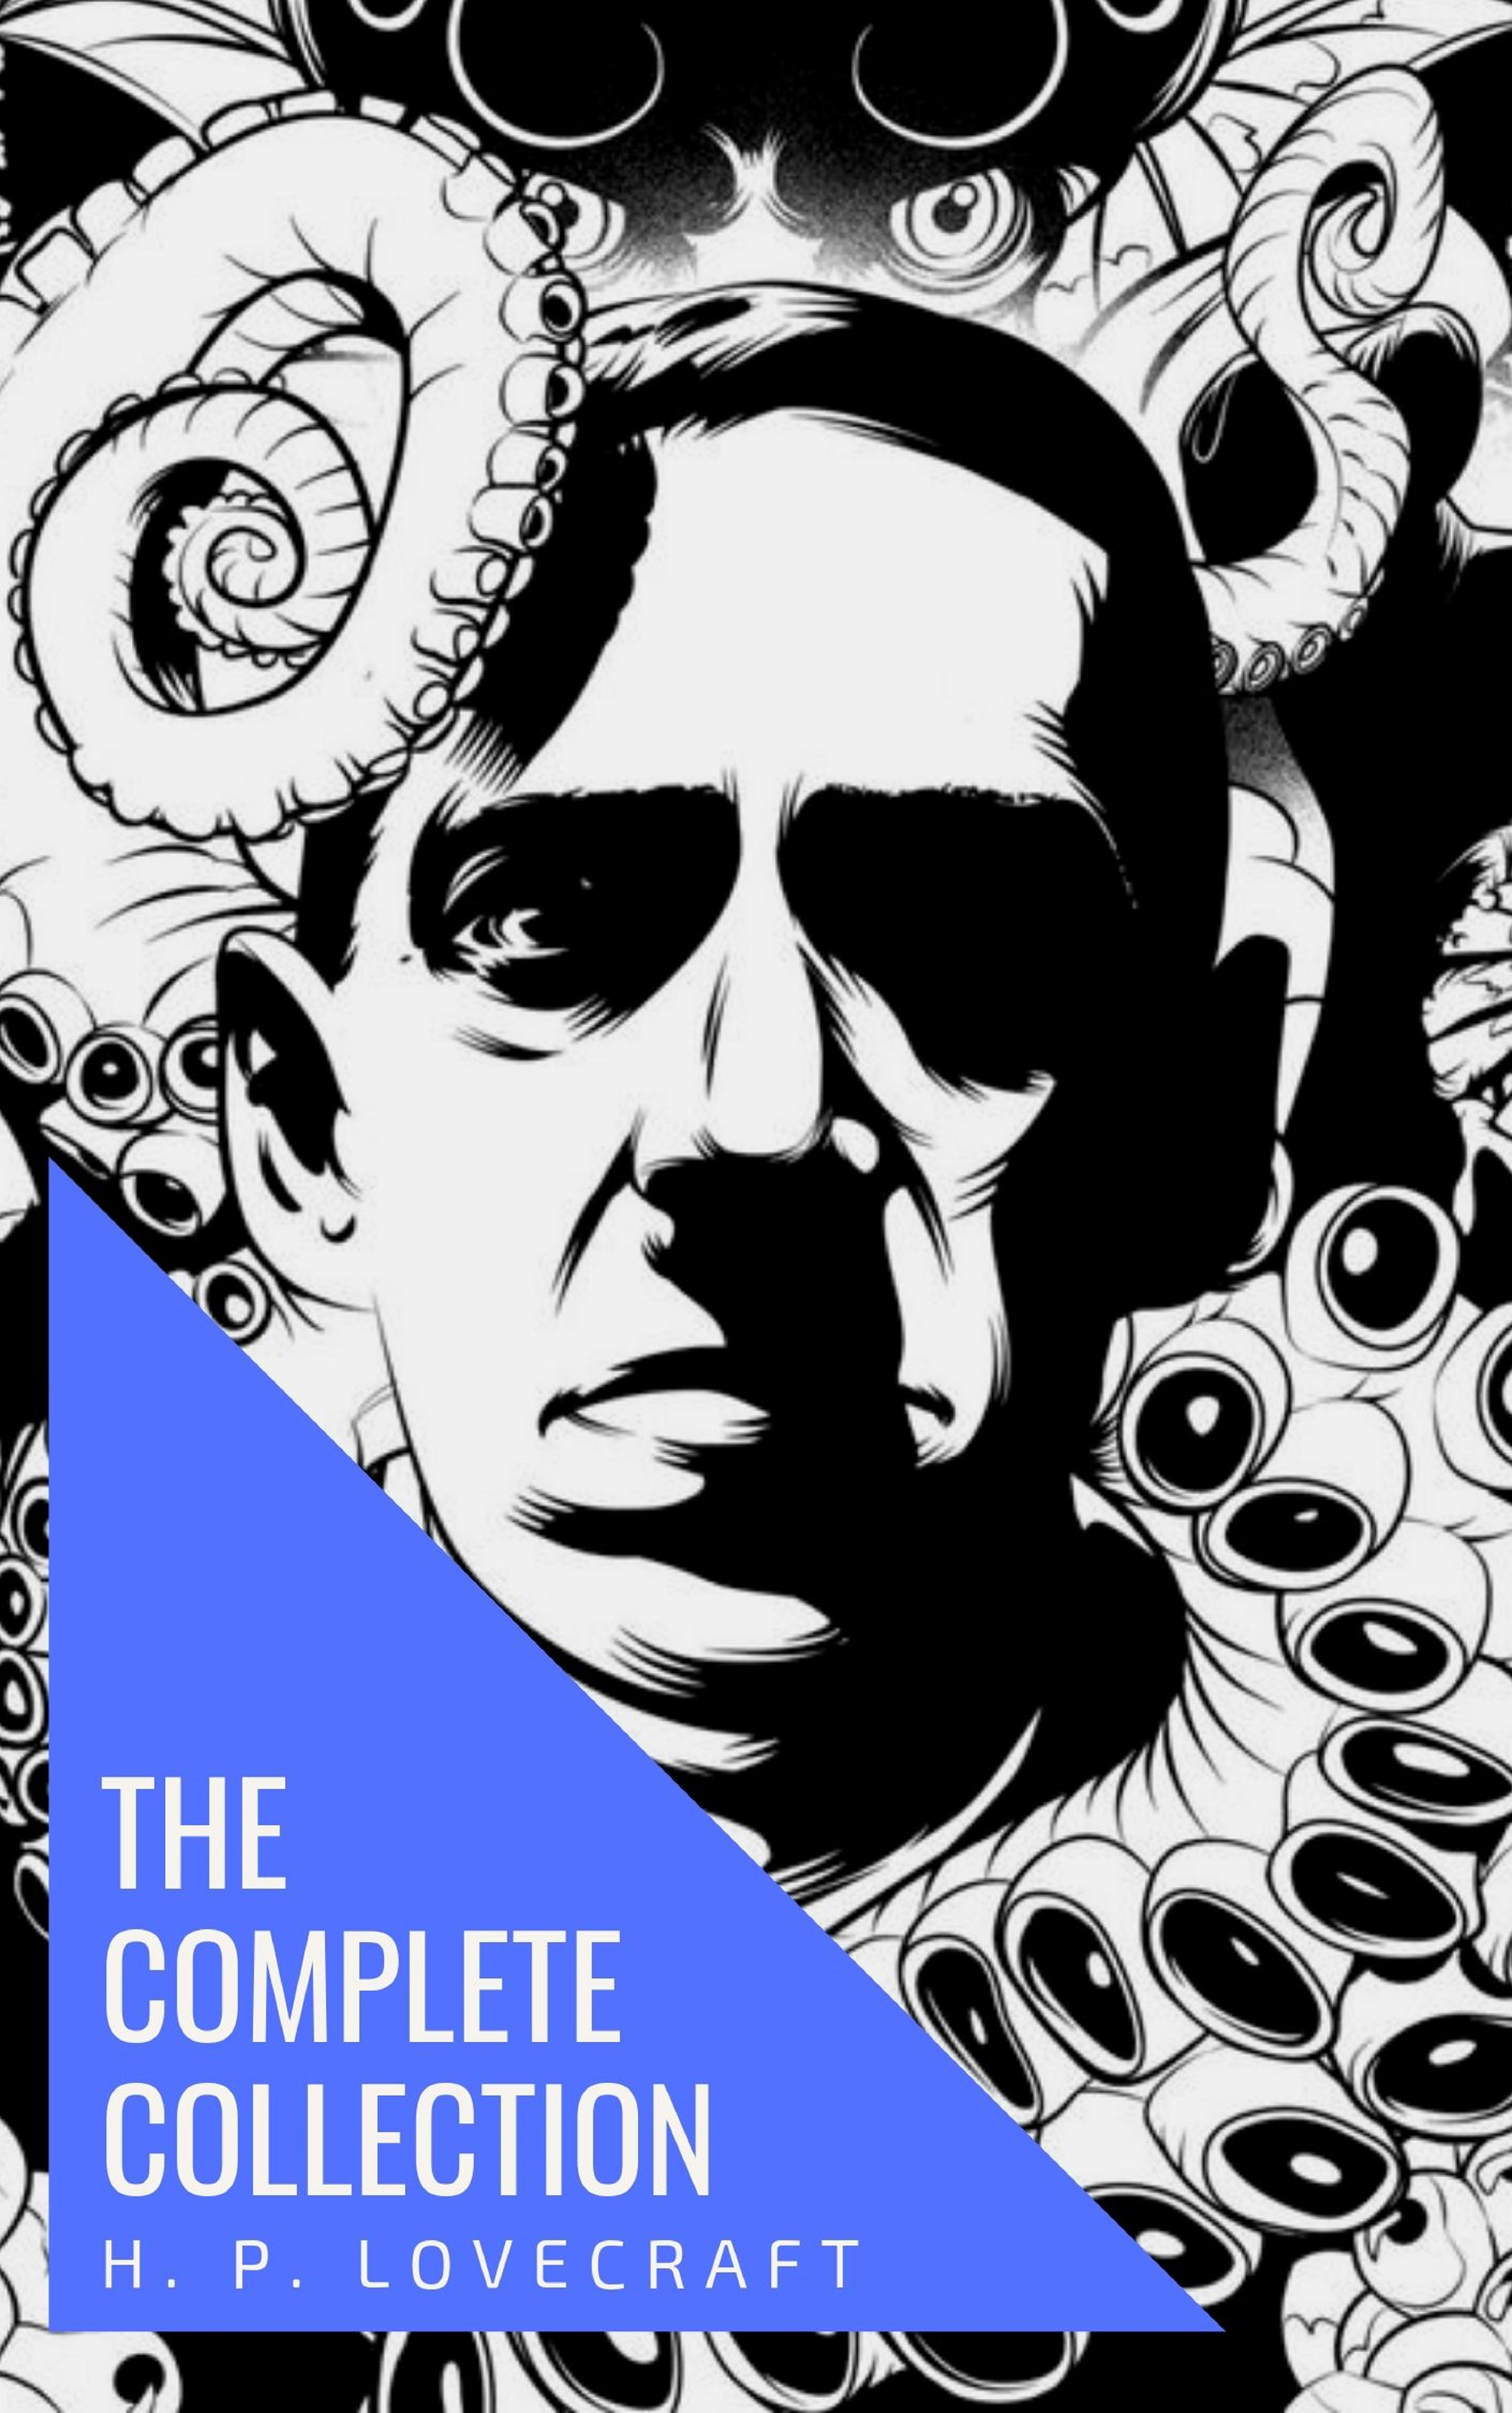 цена H. P. Lovecraft The Complete Collection of H. P. Lovecraft